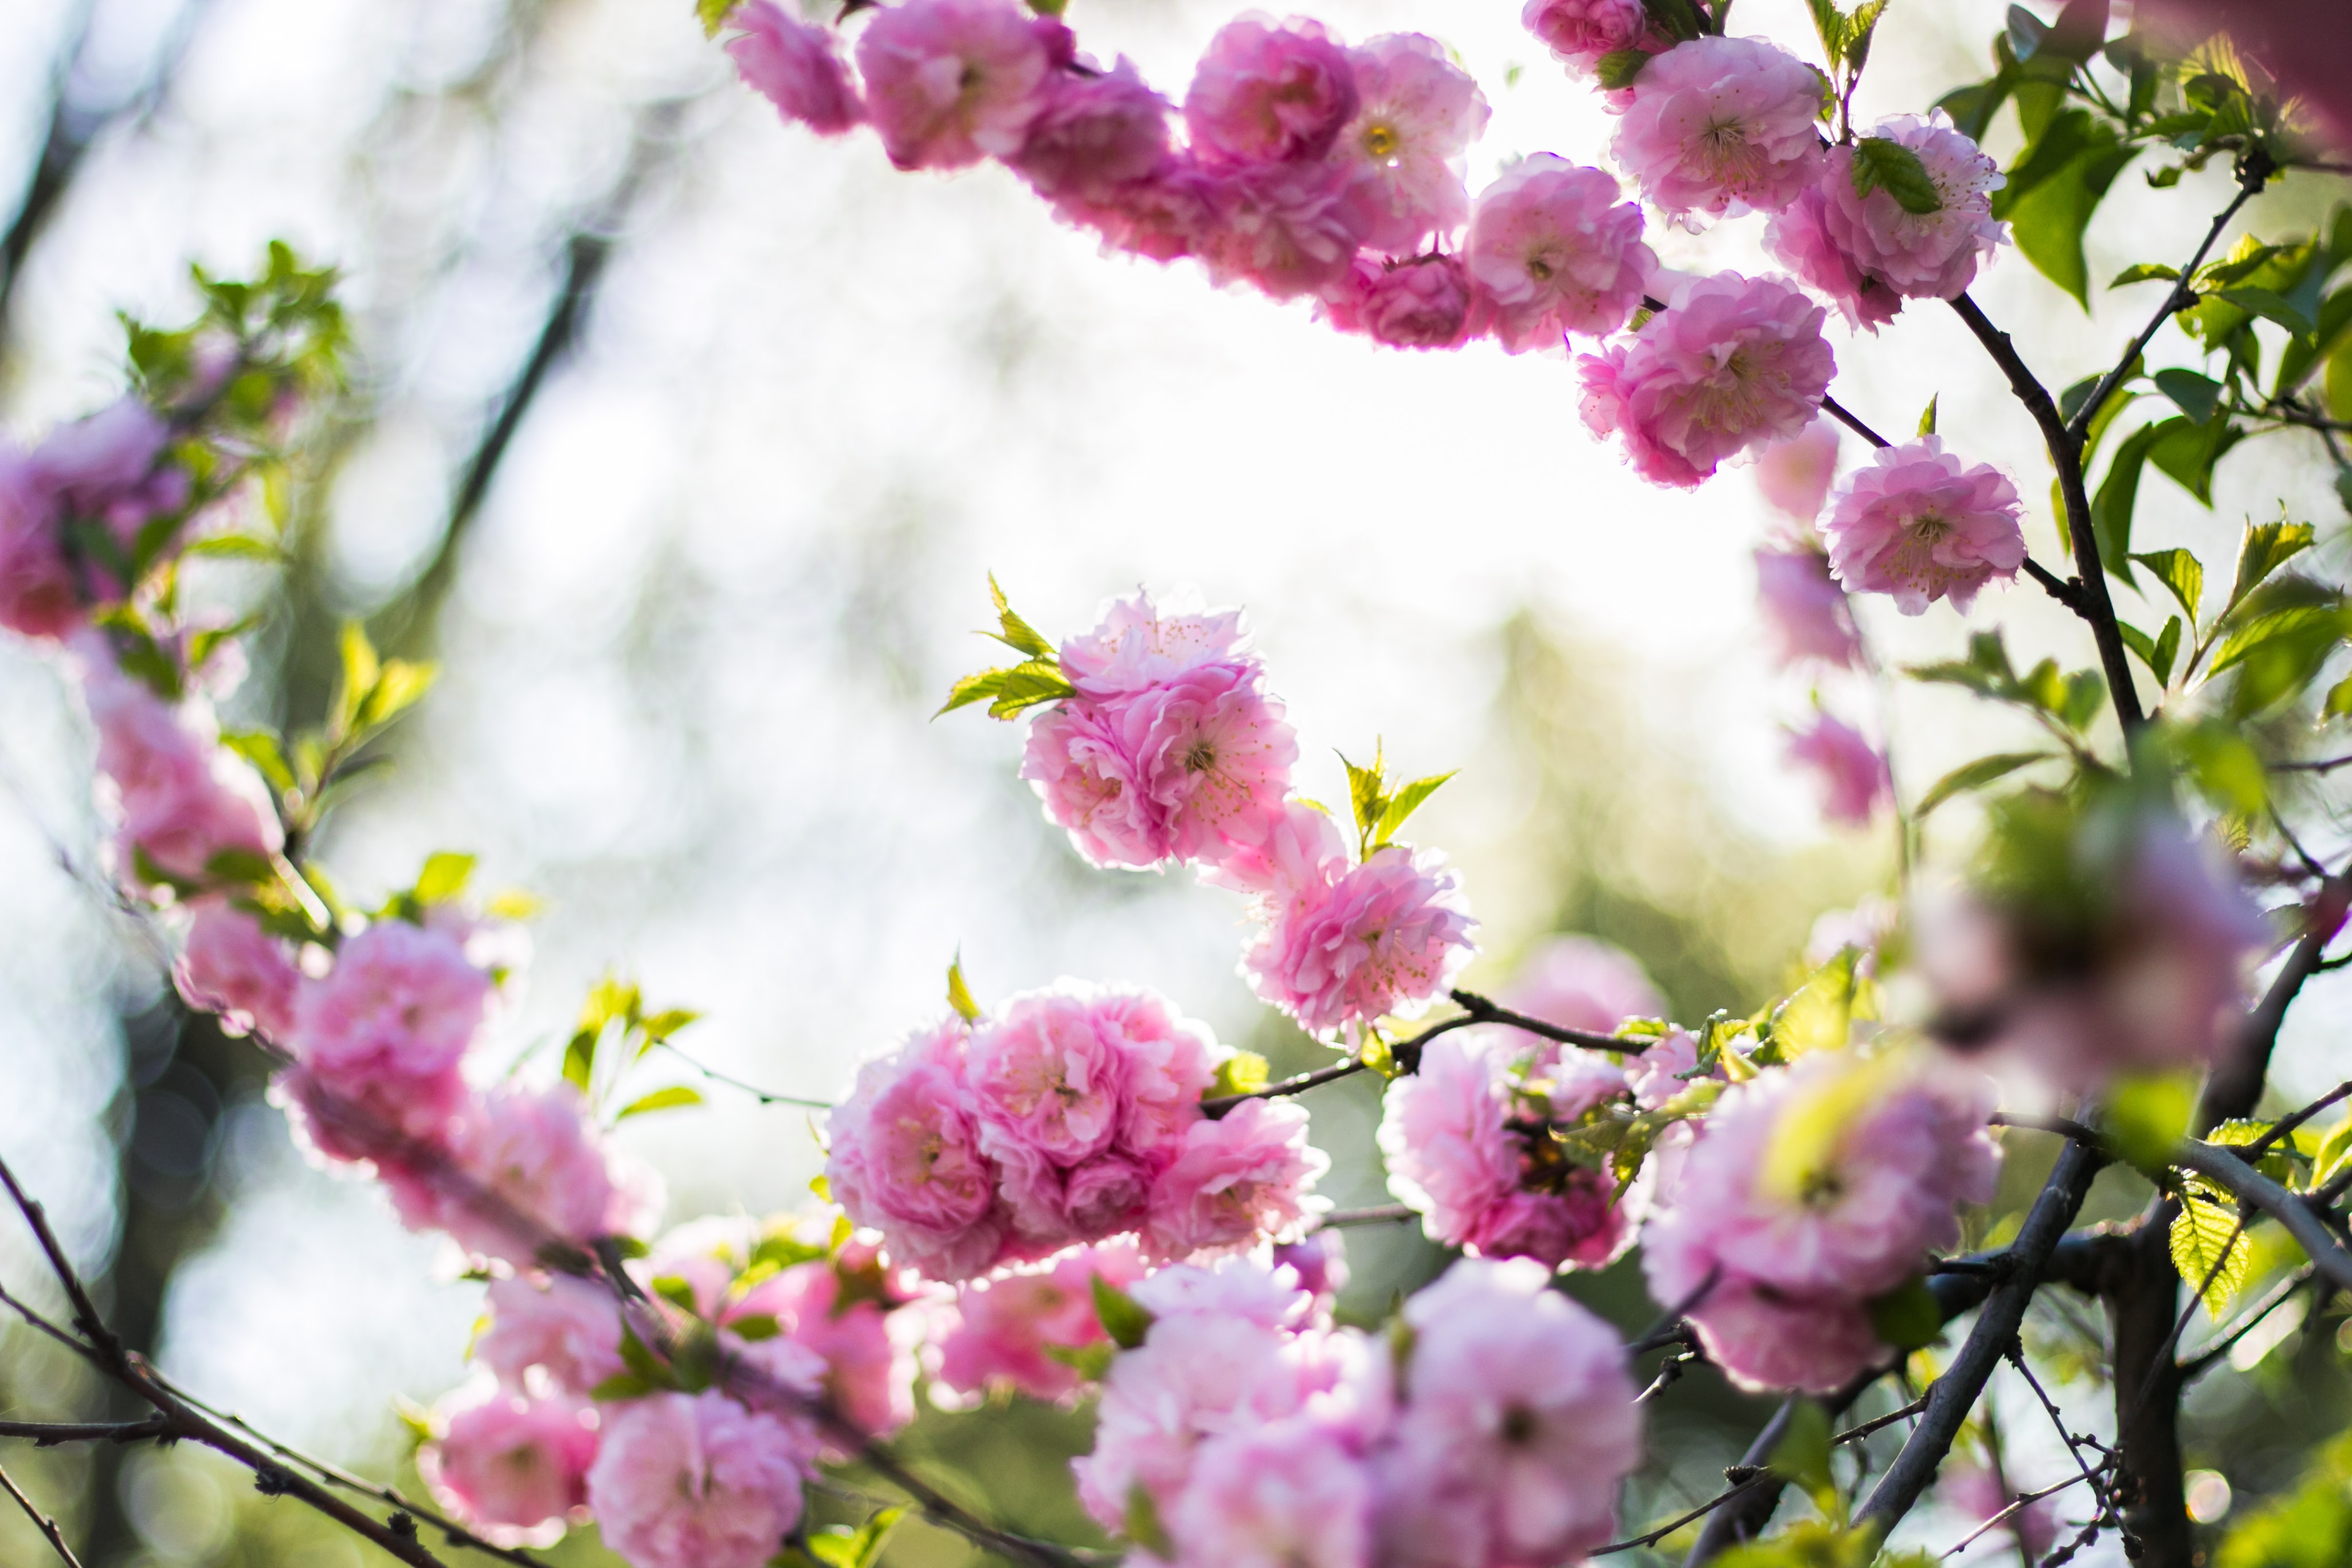 Bunches of thick pink blossom on leafy branches in daytime in Spring